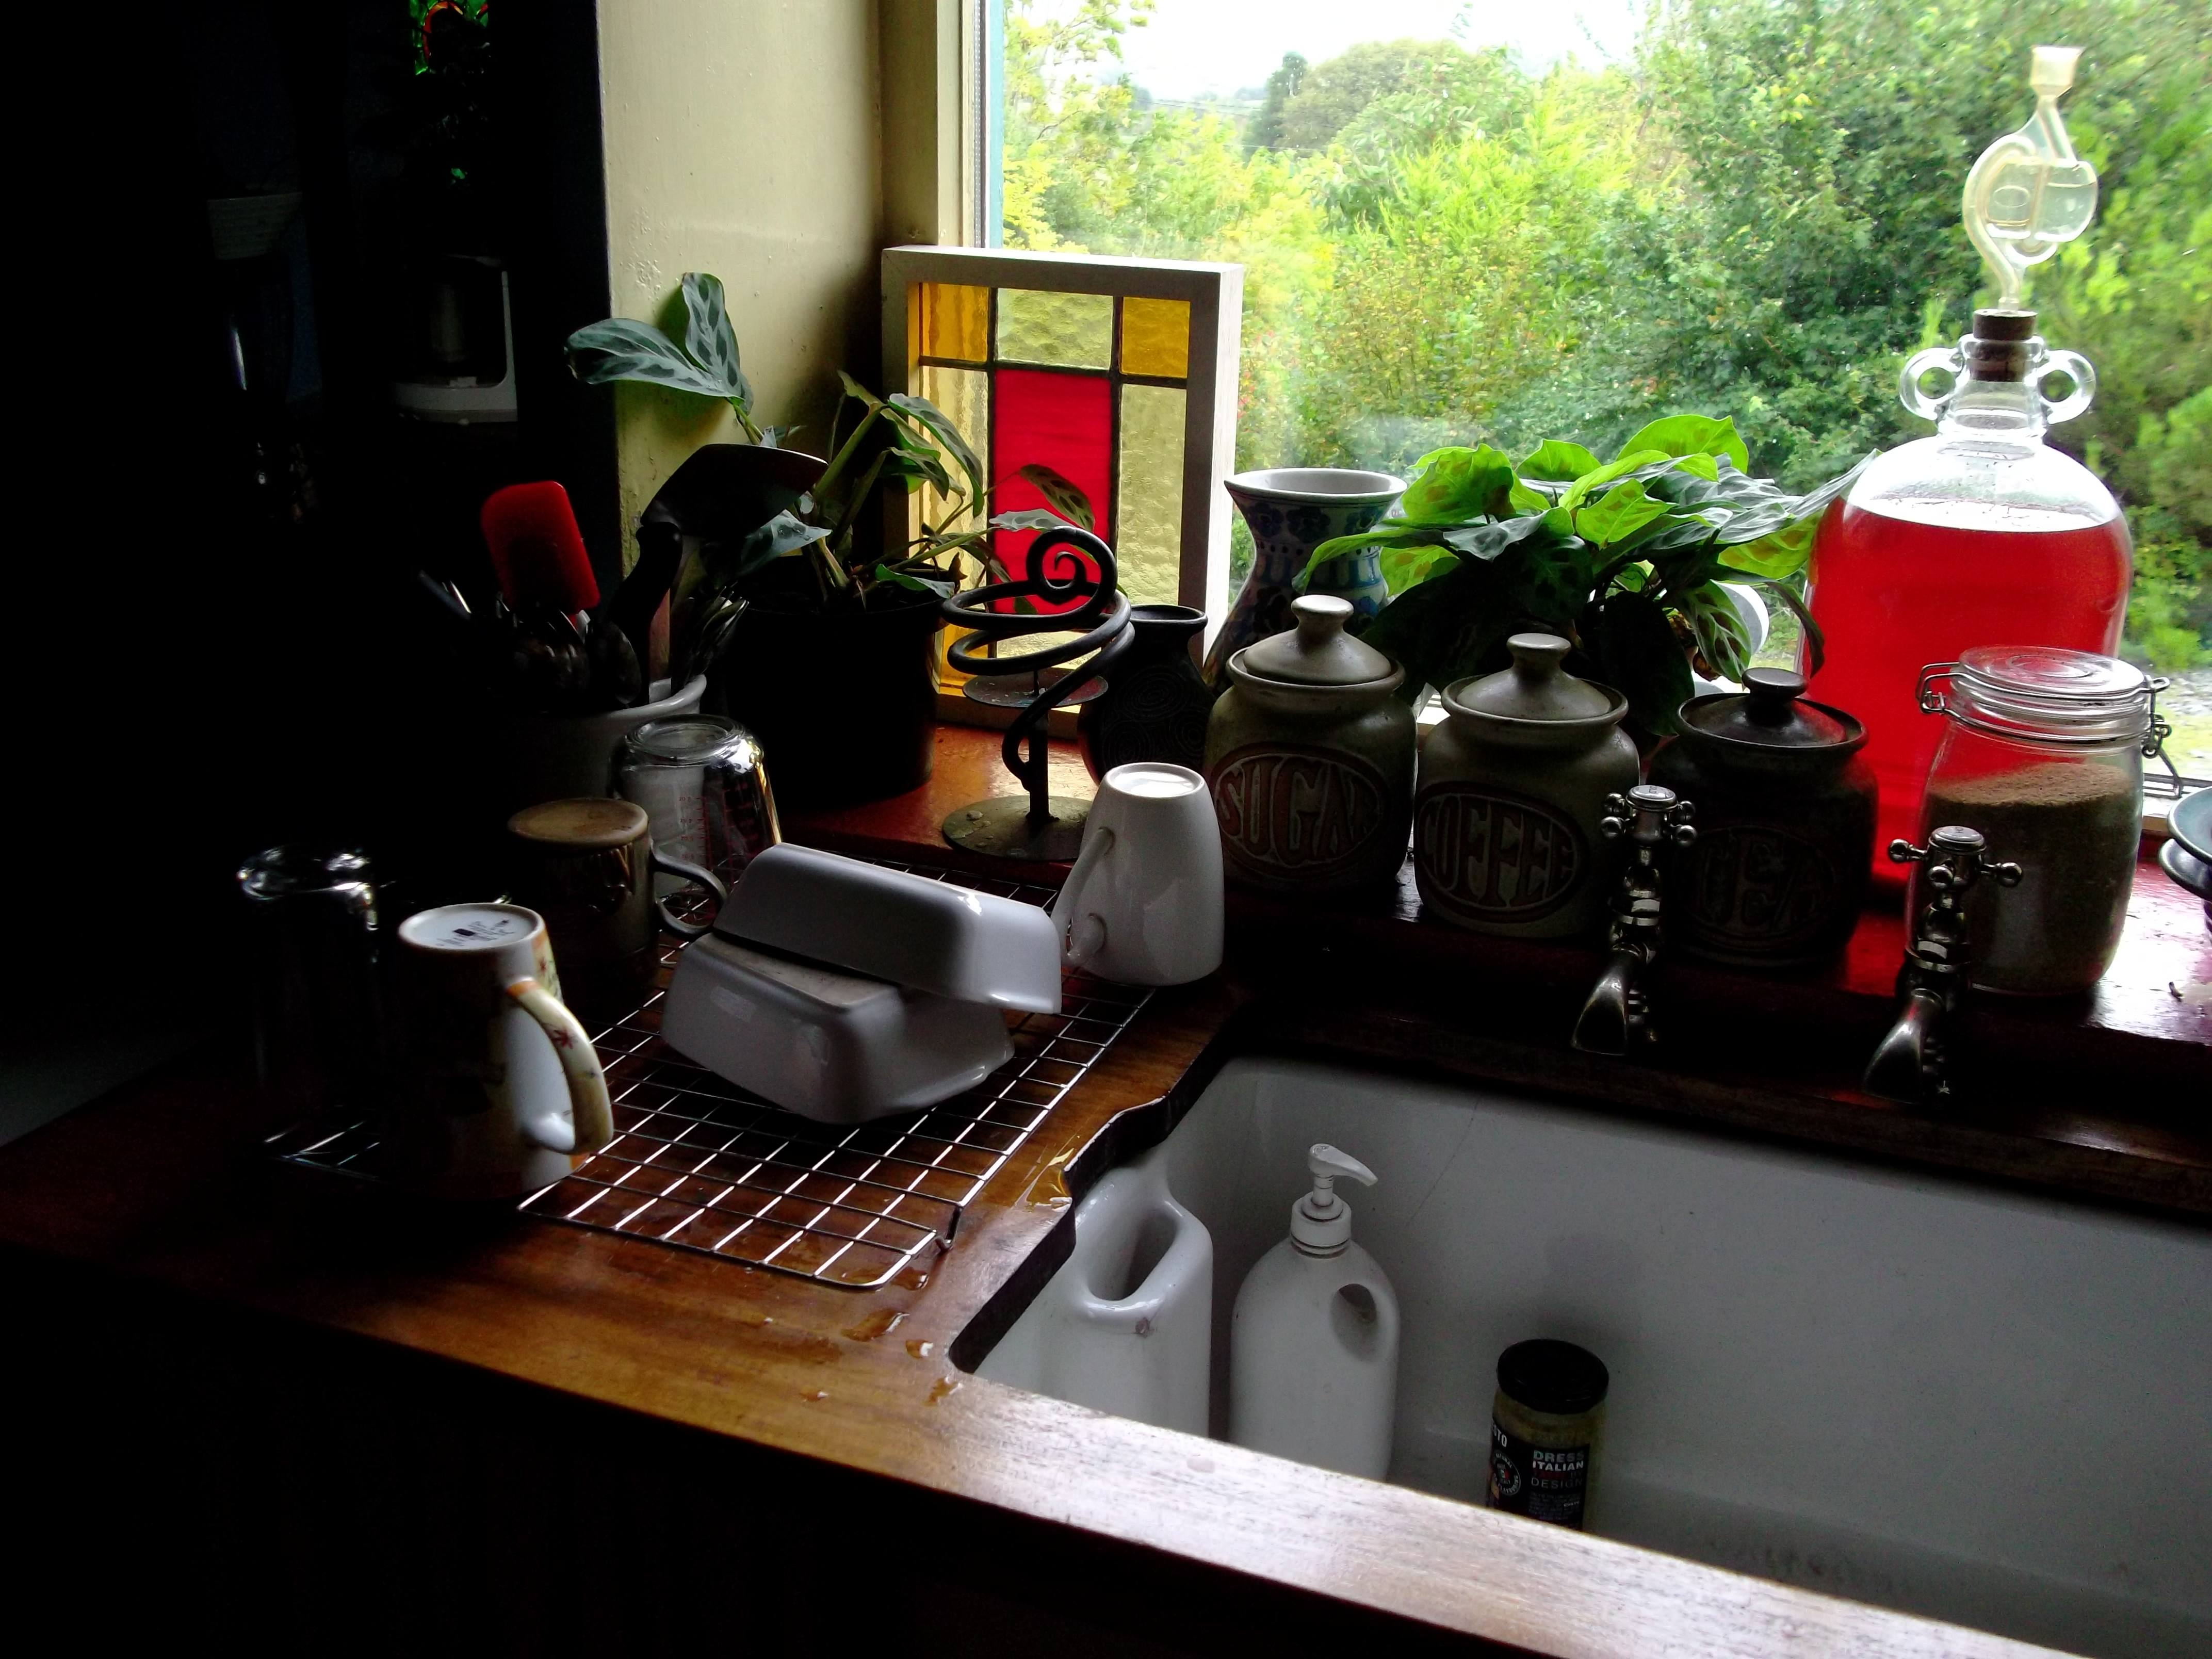 Permaculture Kitchen Sink Waste Project